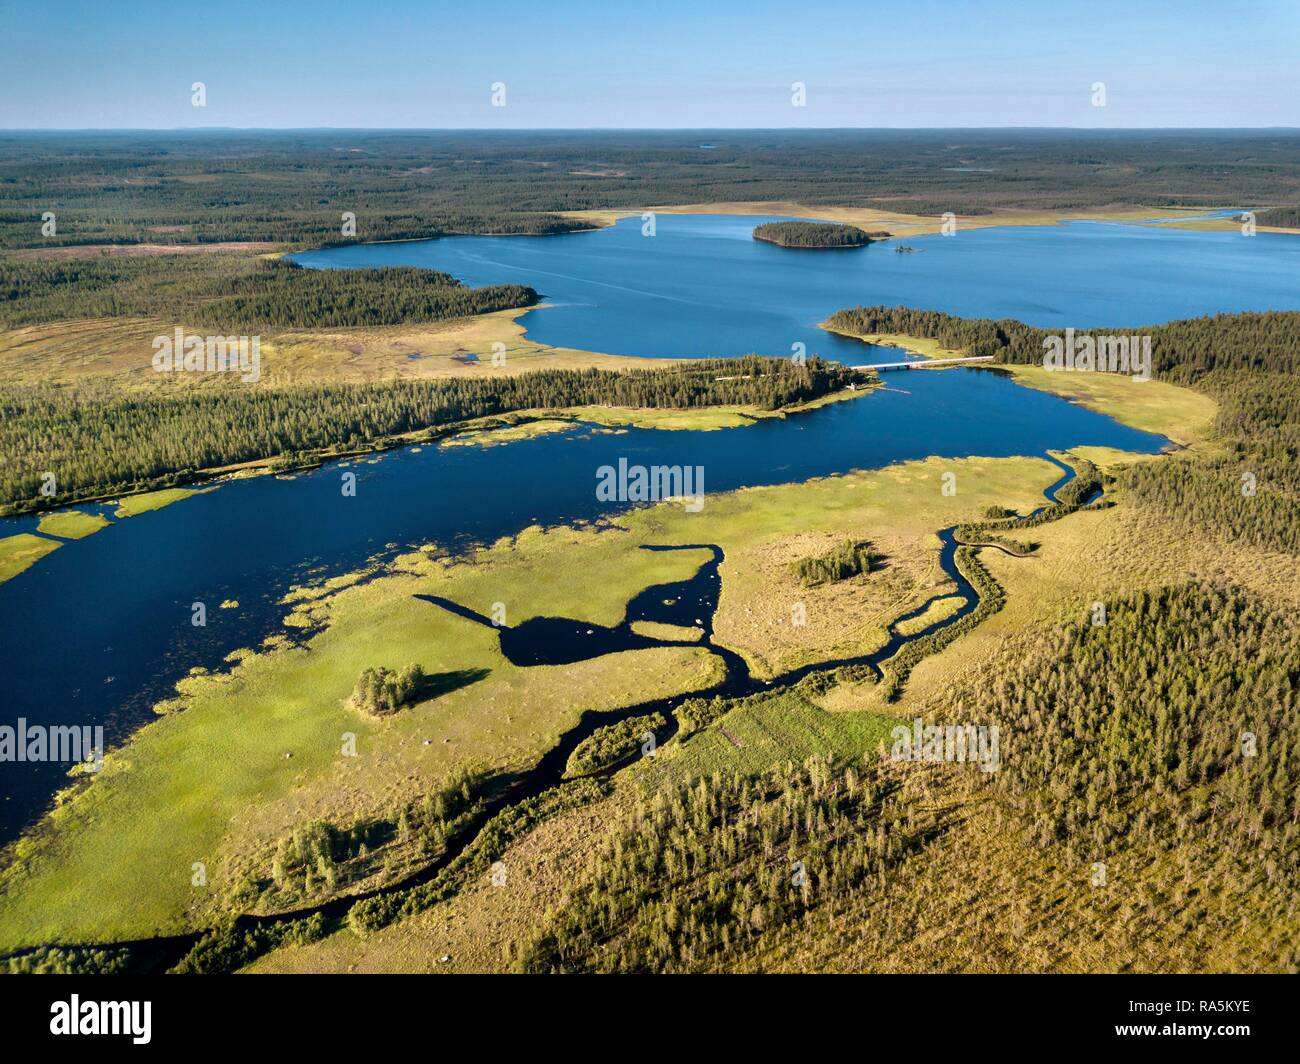 Drone shot, lake landscape with floodplains, wetland, moor, boreal, arctic conifers, forest, water channel, Suomussalmi, Kainuu - Stock Image